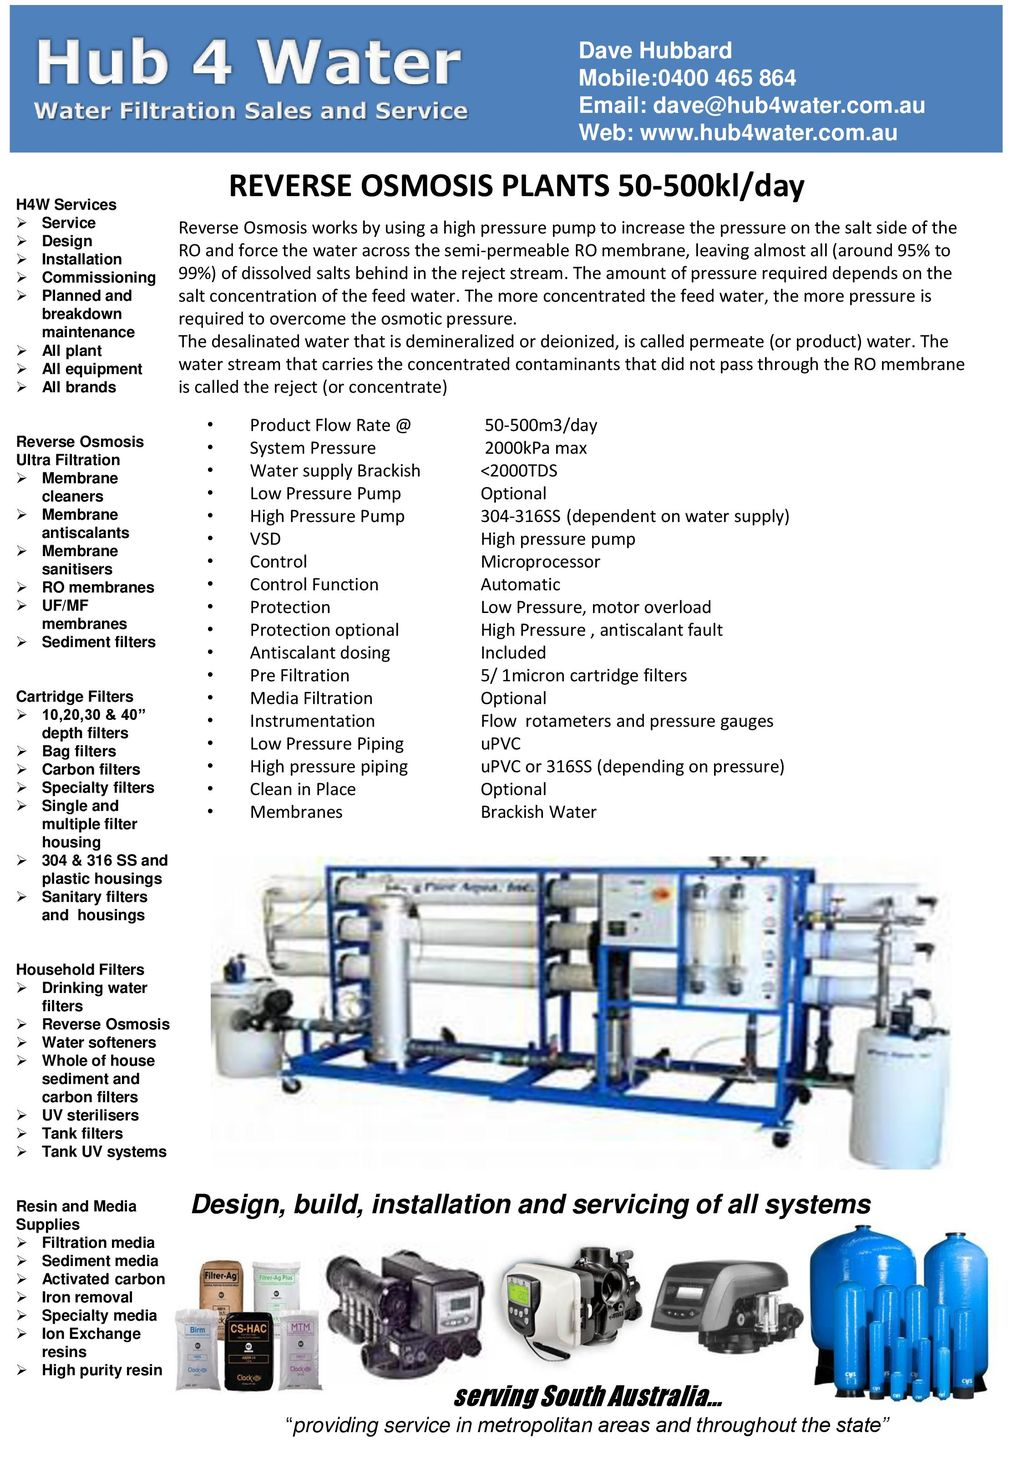 Reverse Osmosis Plants Kl Day Ppt Download Process Flow Diagram Plant